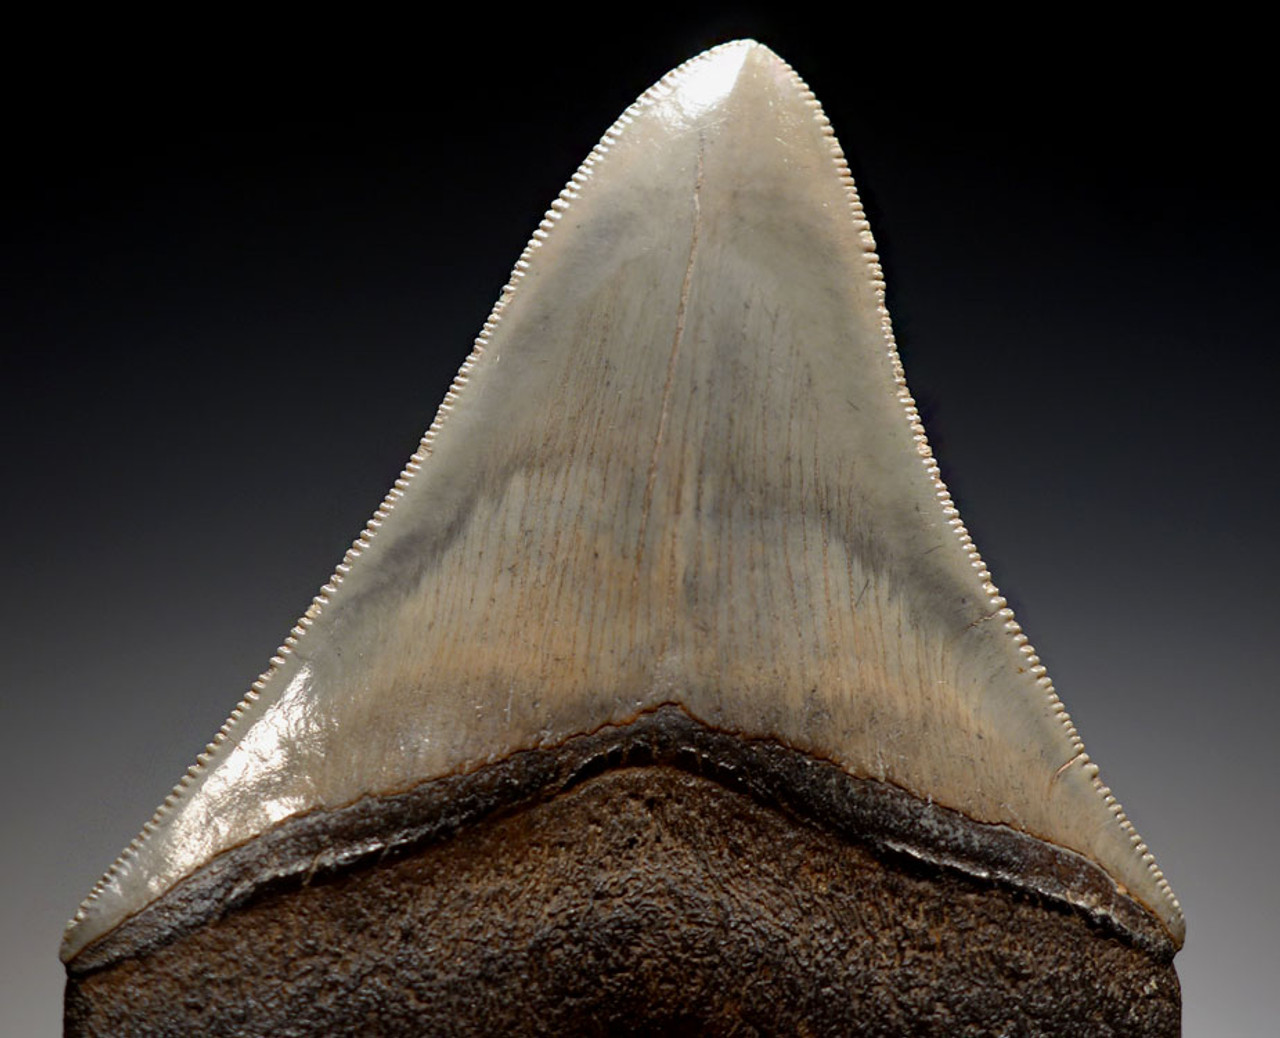 SH6-332 - FINEST GRADE 3.6 INCH MEGALODON SHARK TOOTH WITH THUNDER CLOUDS ENAMEL PATTERNS